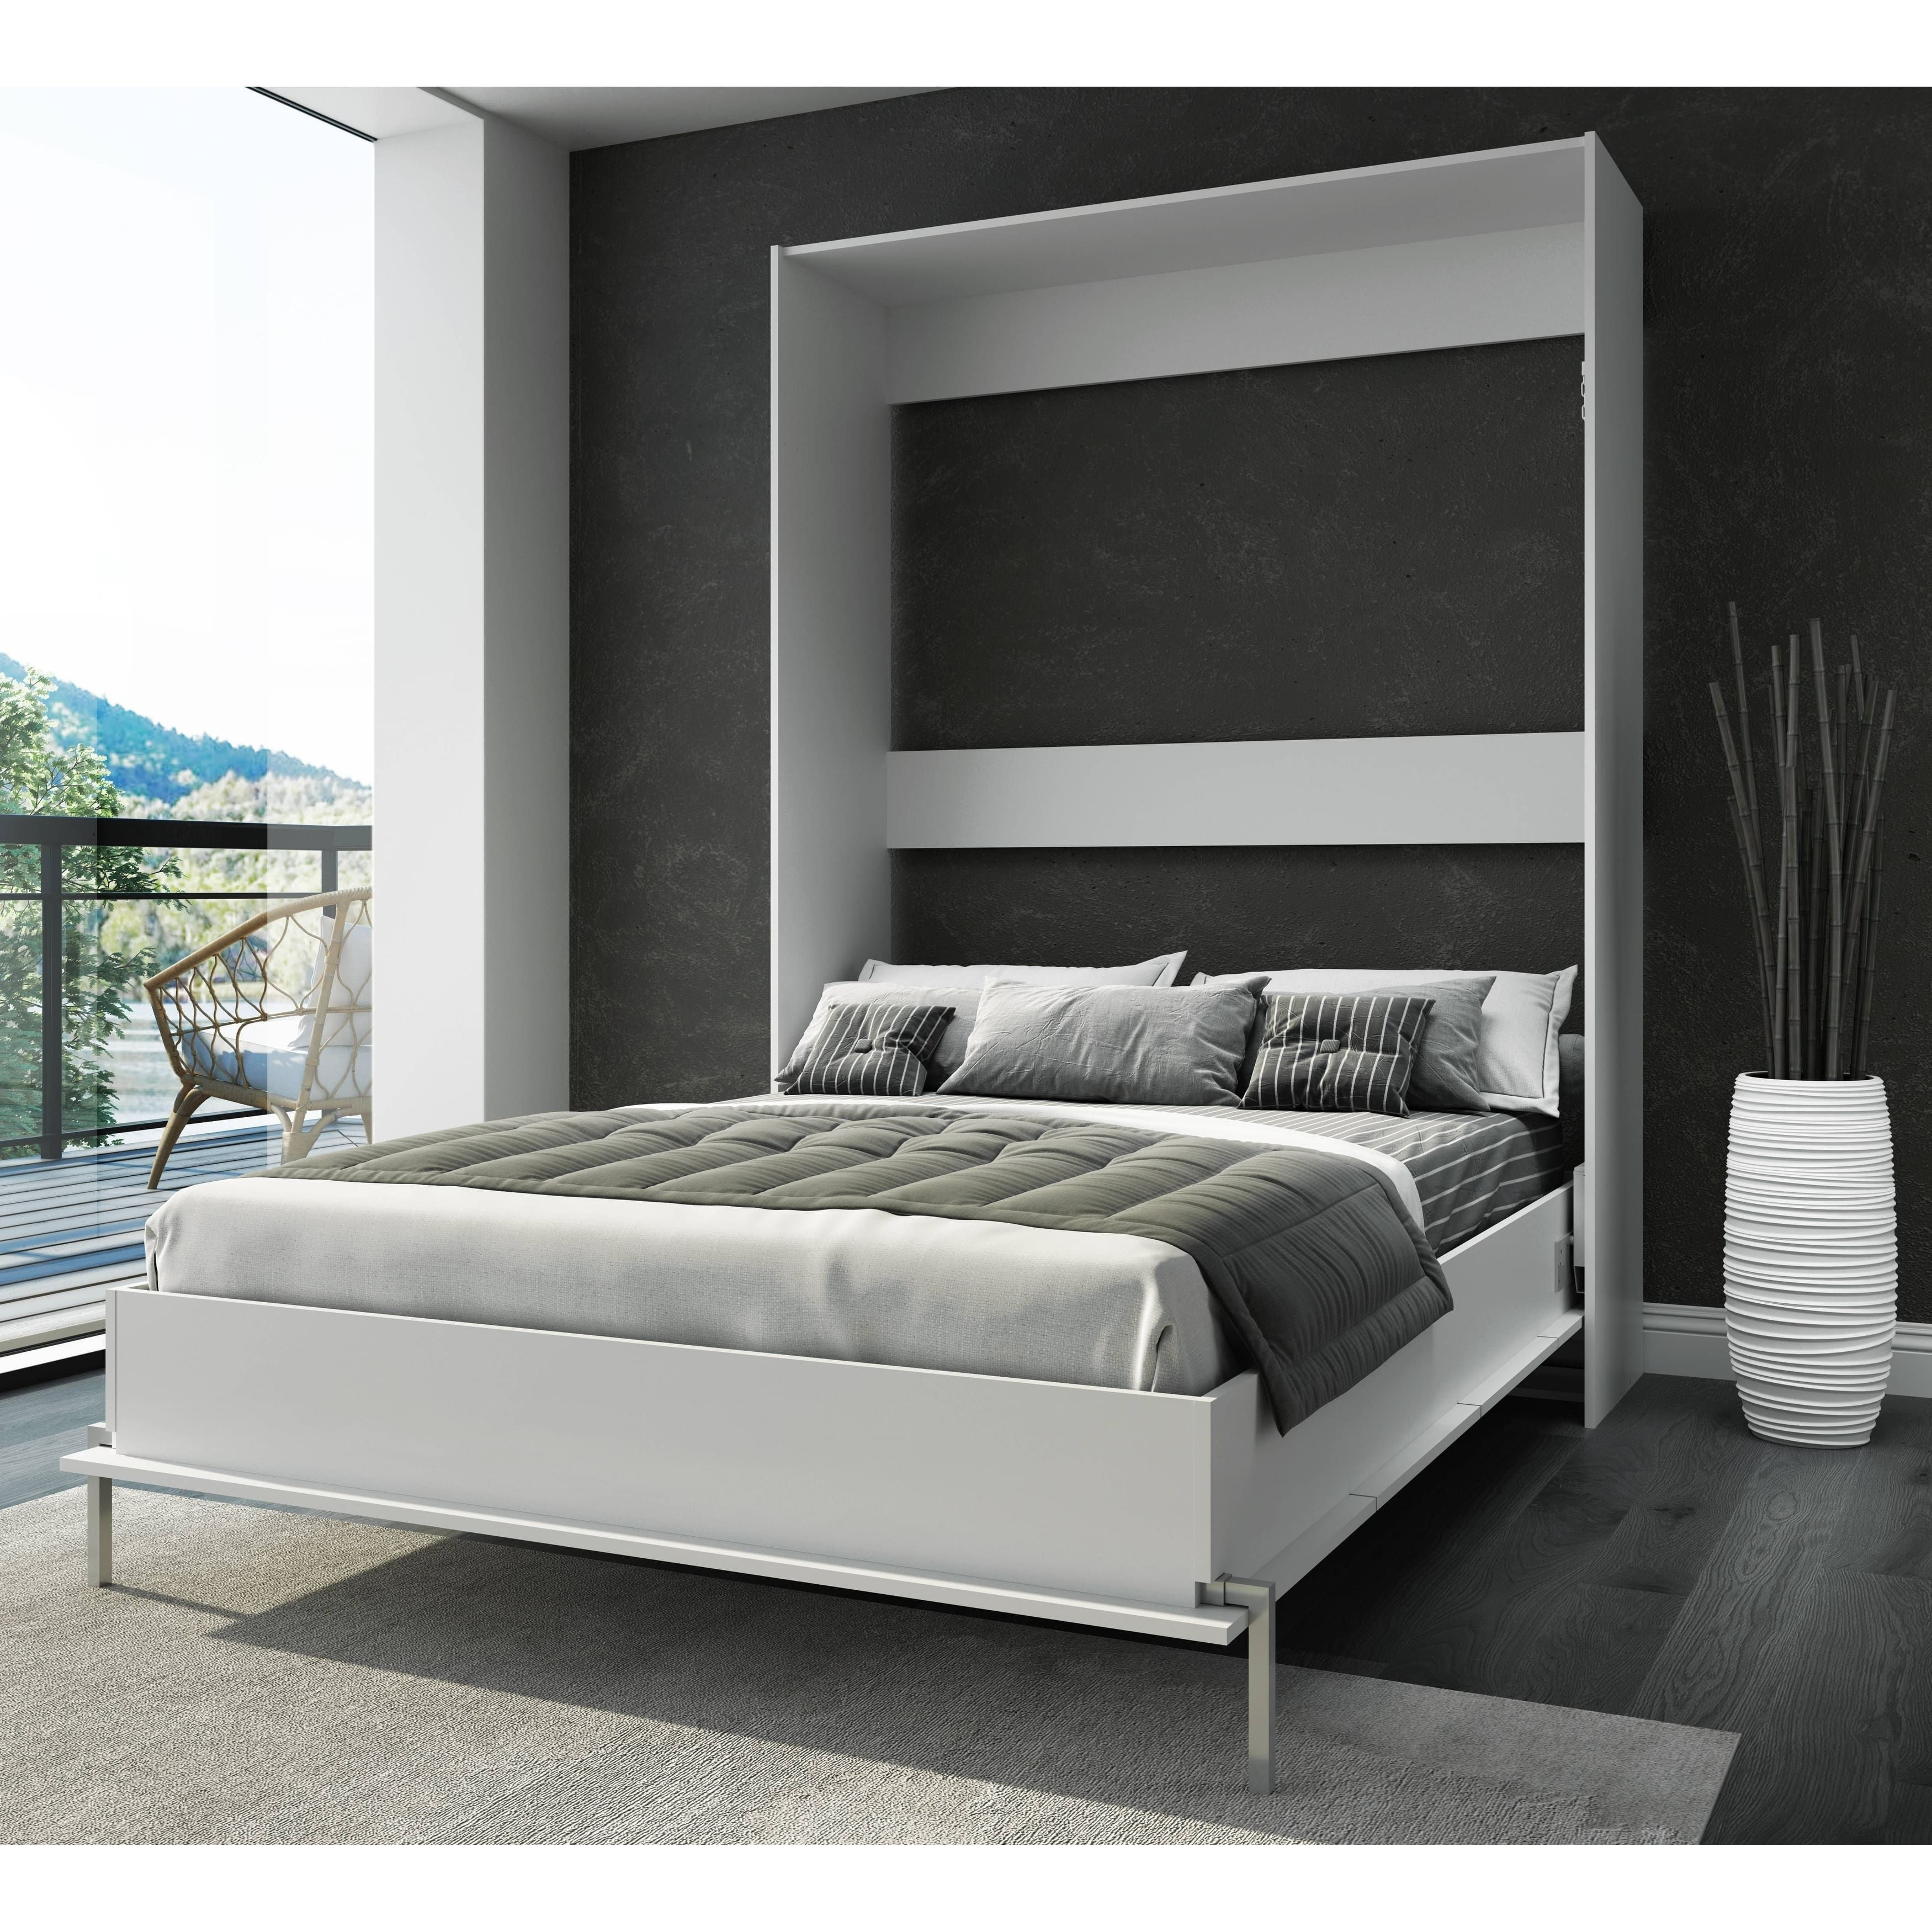 Our Best Bedroom Furniture Deals  Full murphy bed, Wall bed